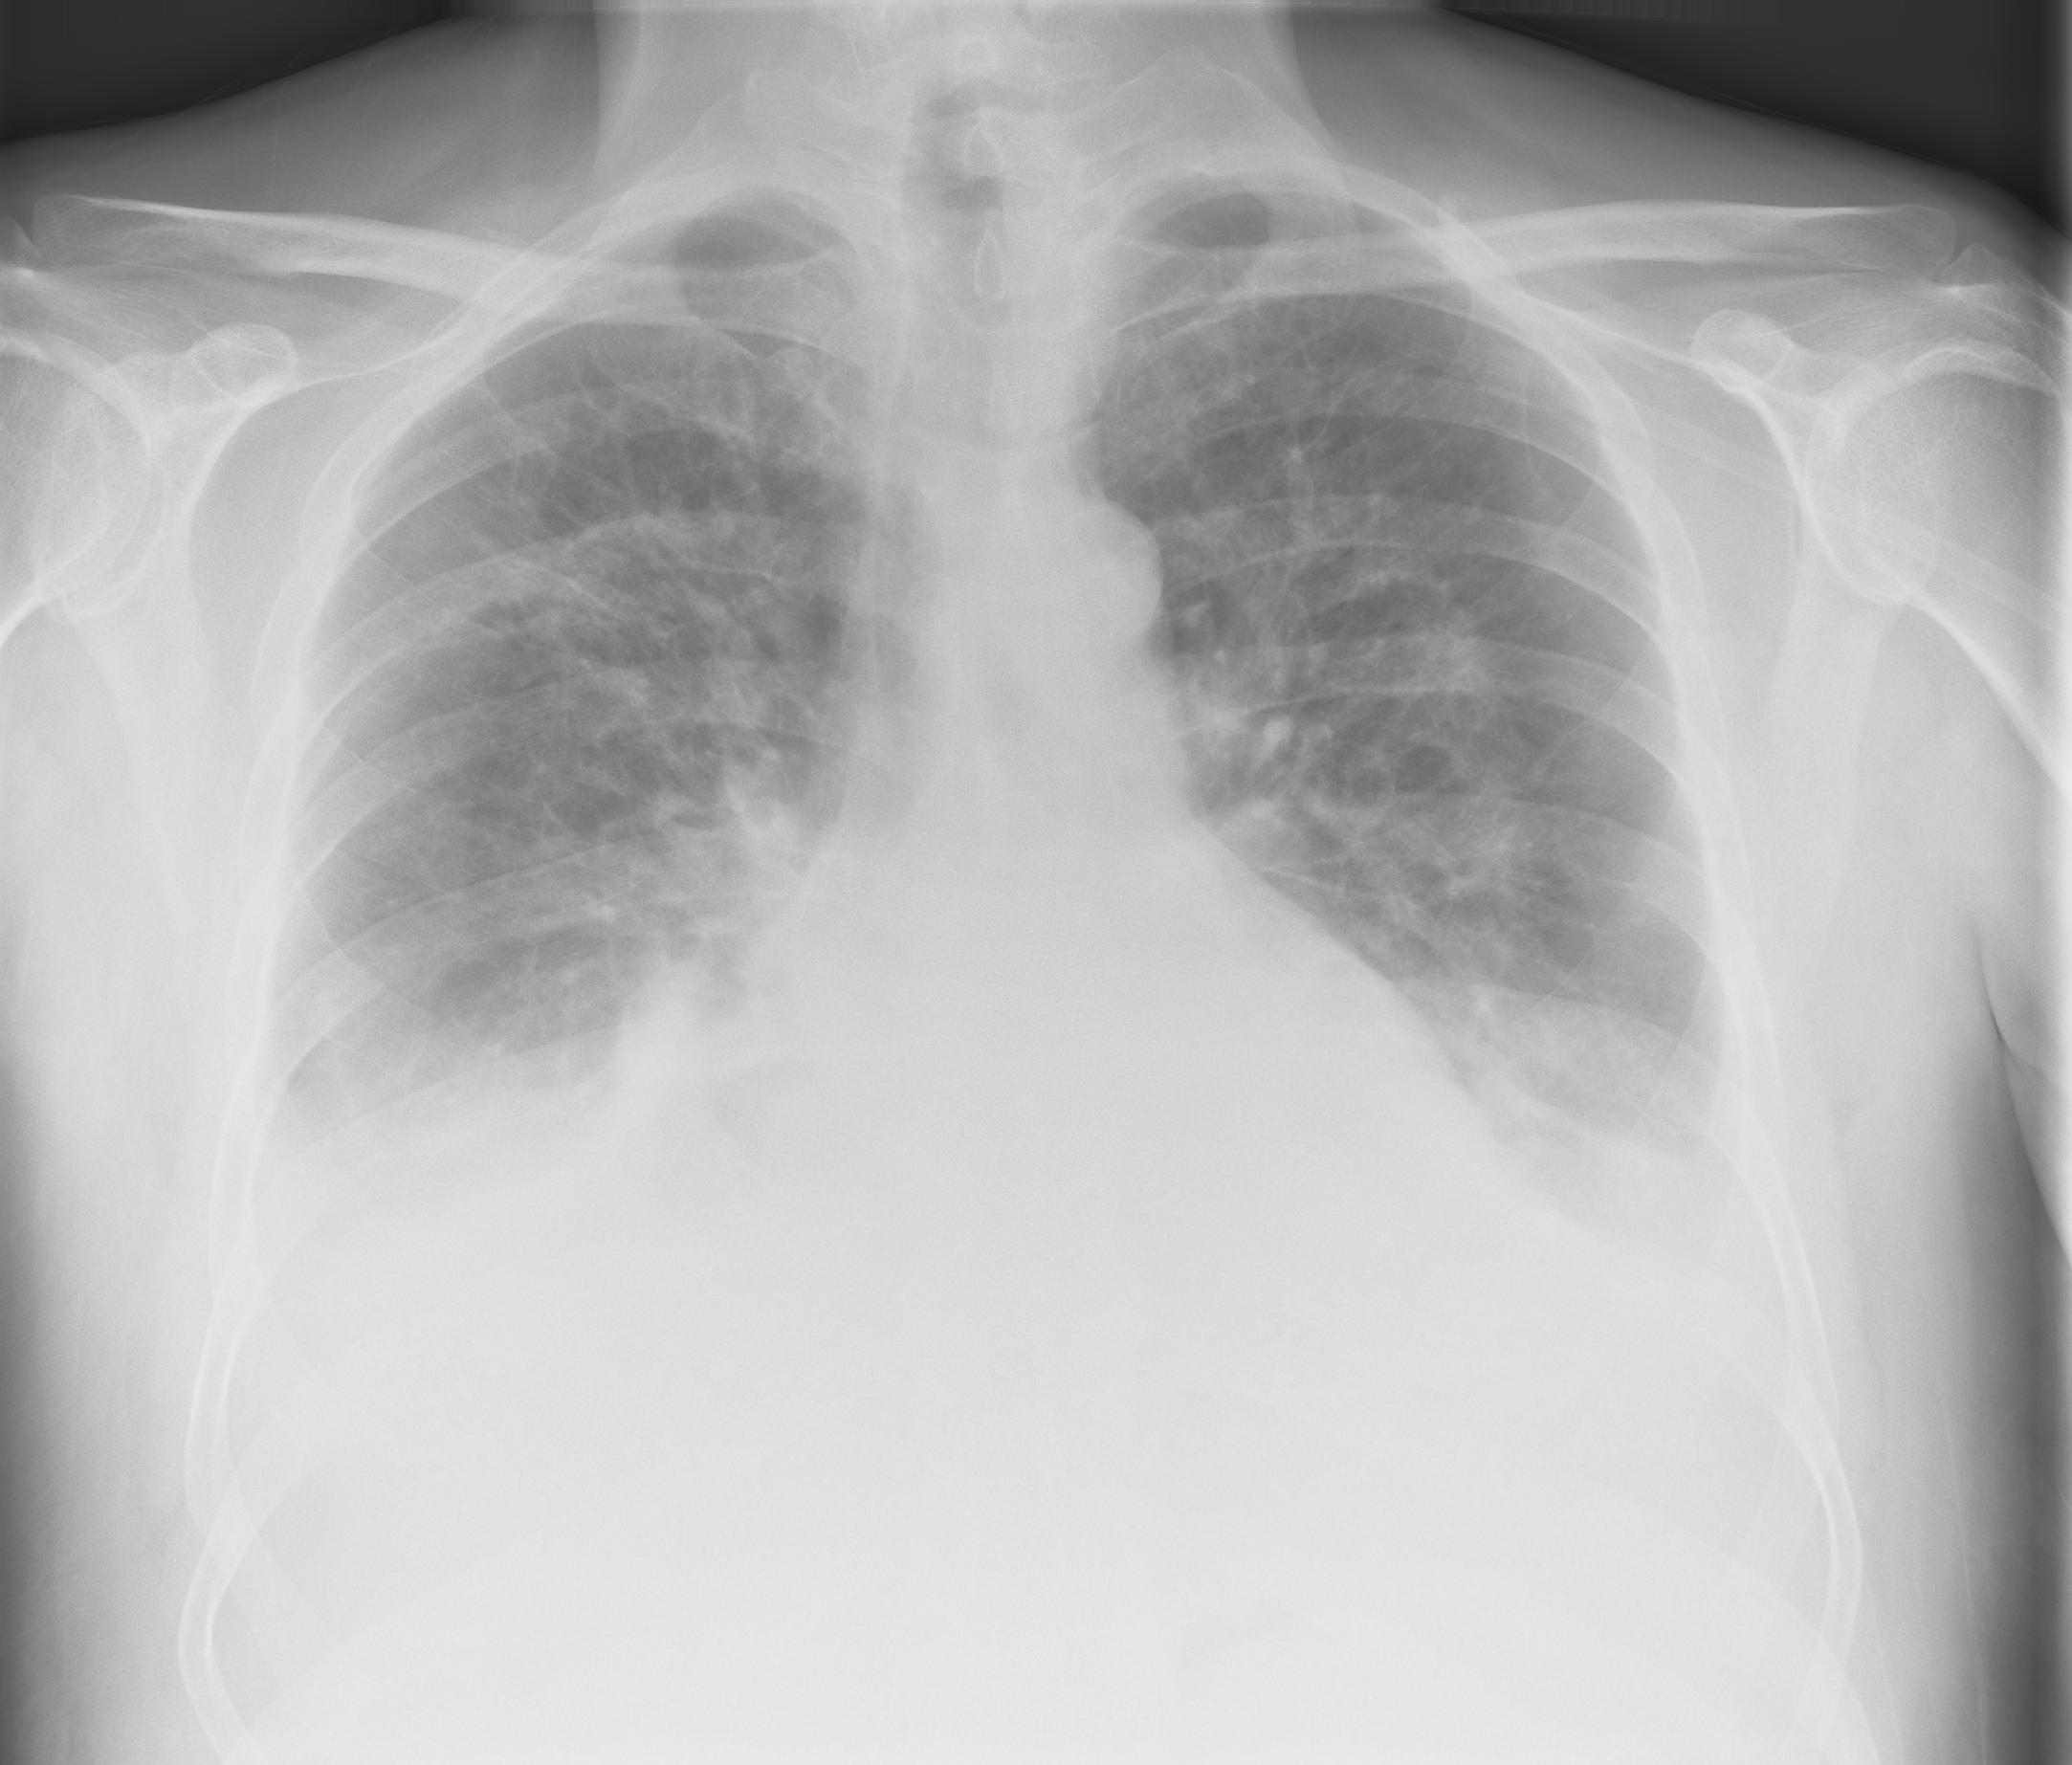 Fluid Levels Bilateral   X-ray (moderate)